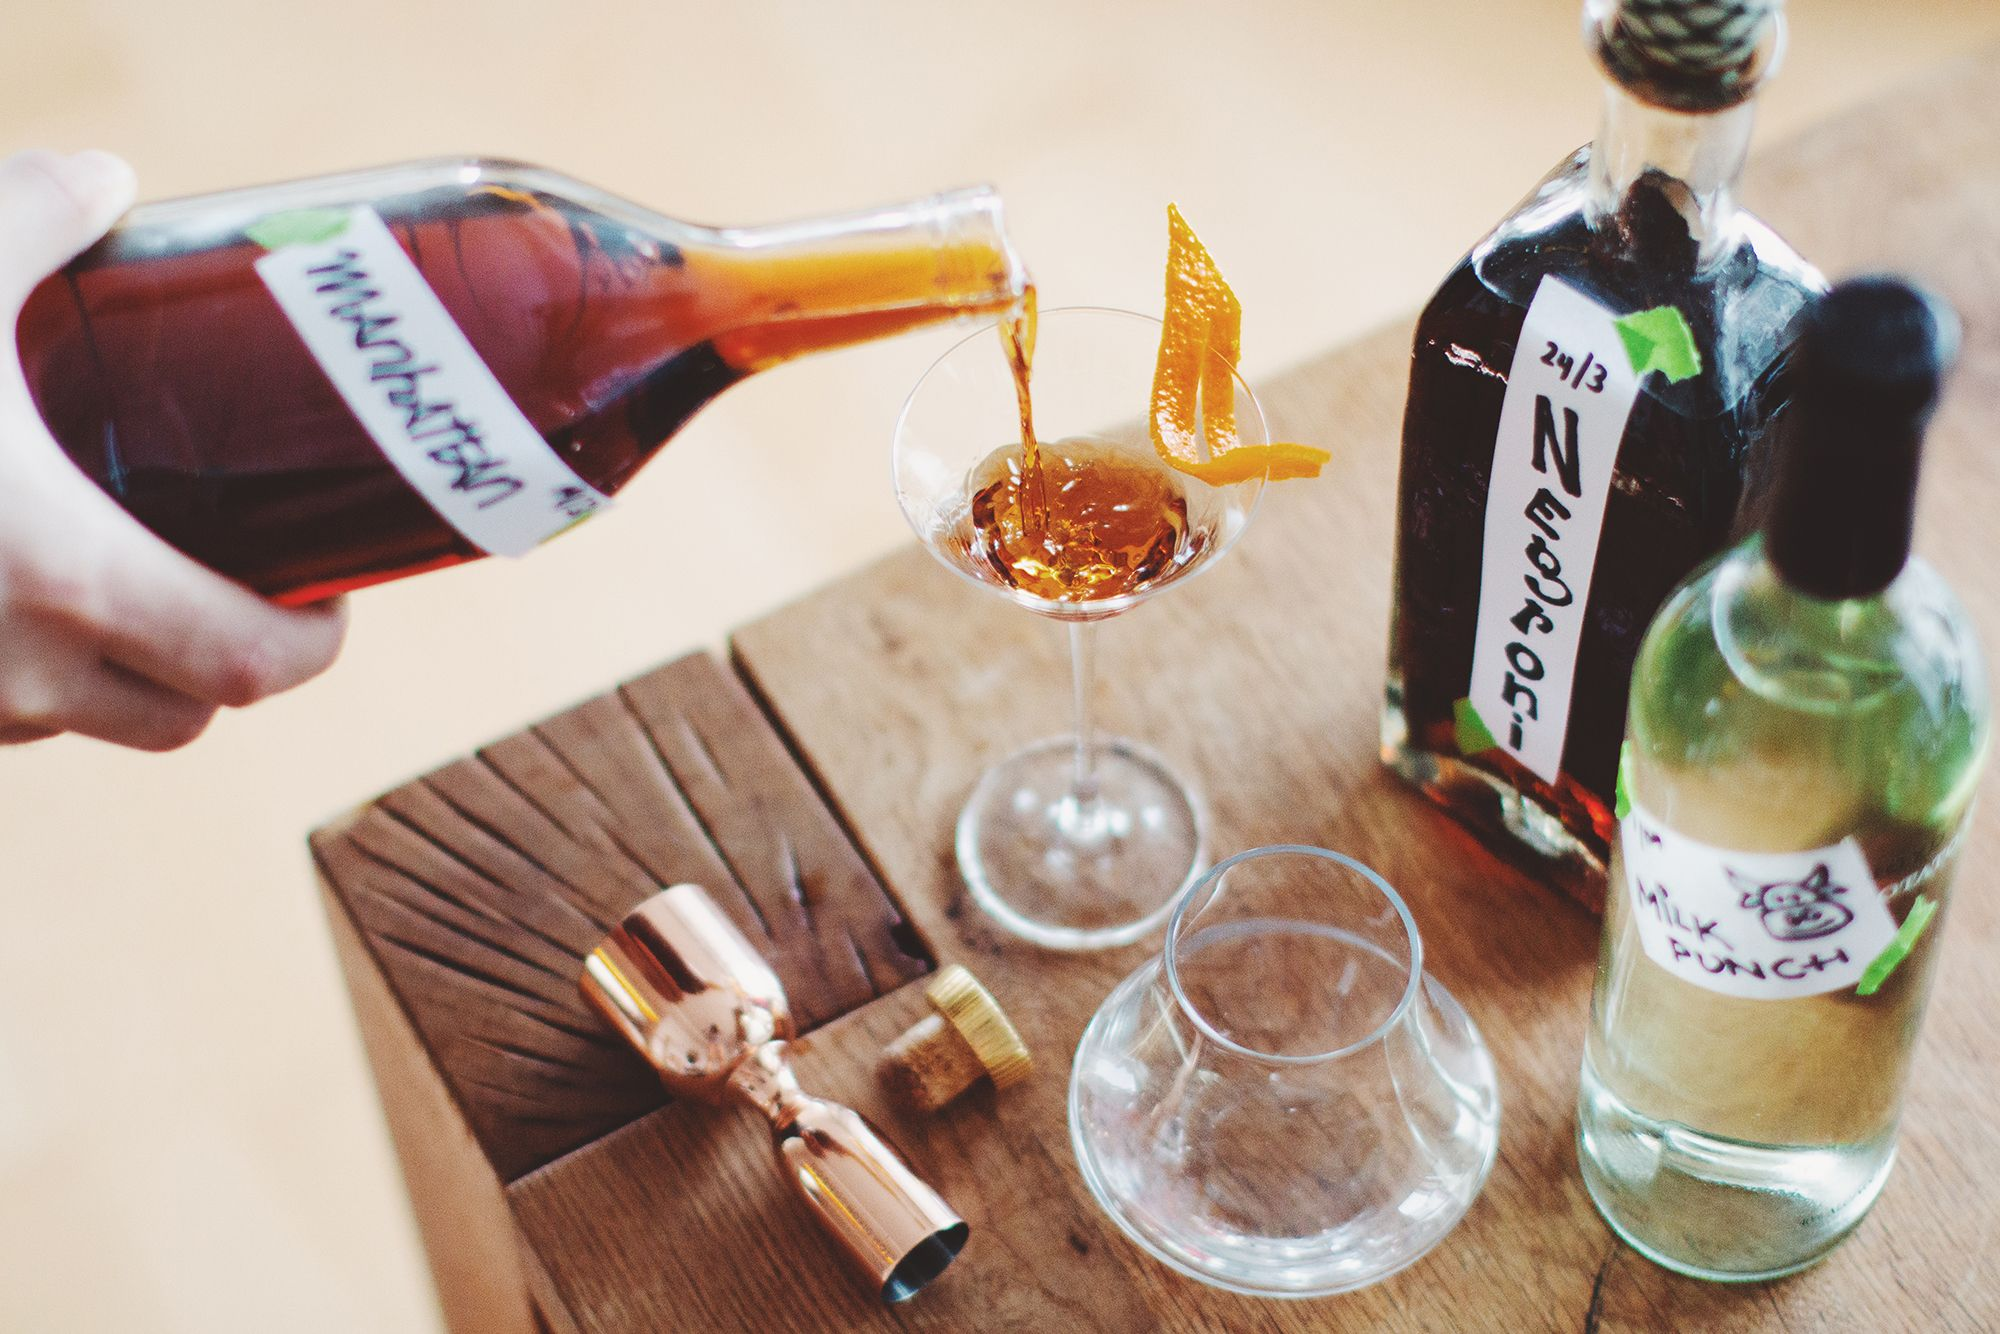 Home Bar Hacks: The Best Pre-Batched Drinks To Make For Keeping In Your Fridge